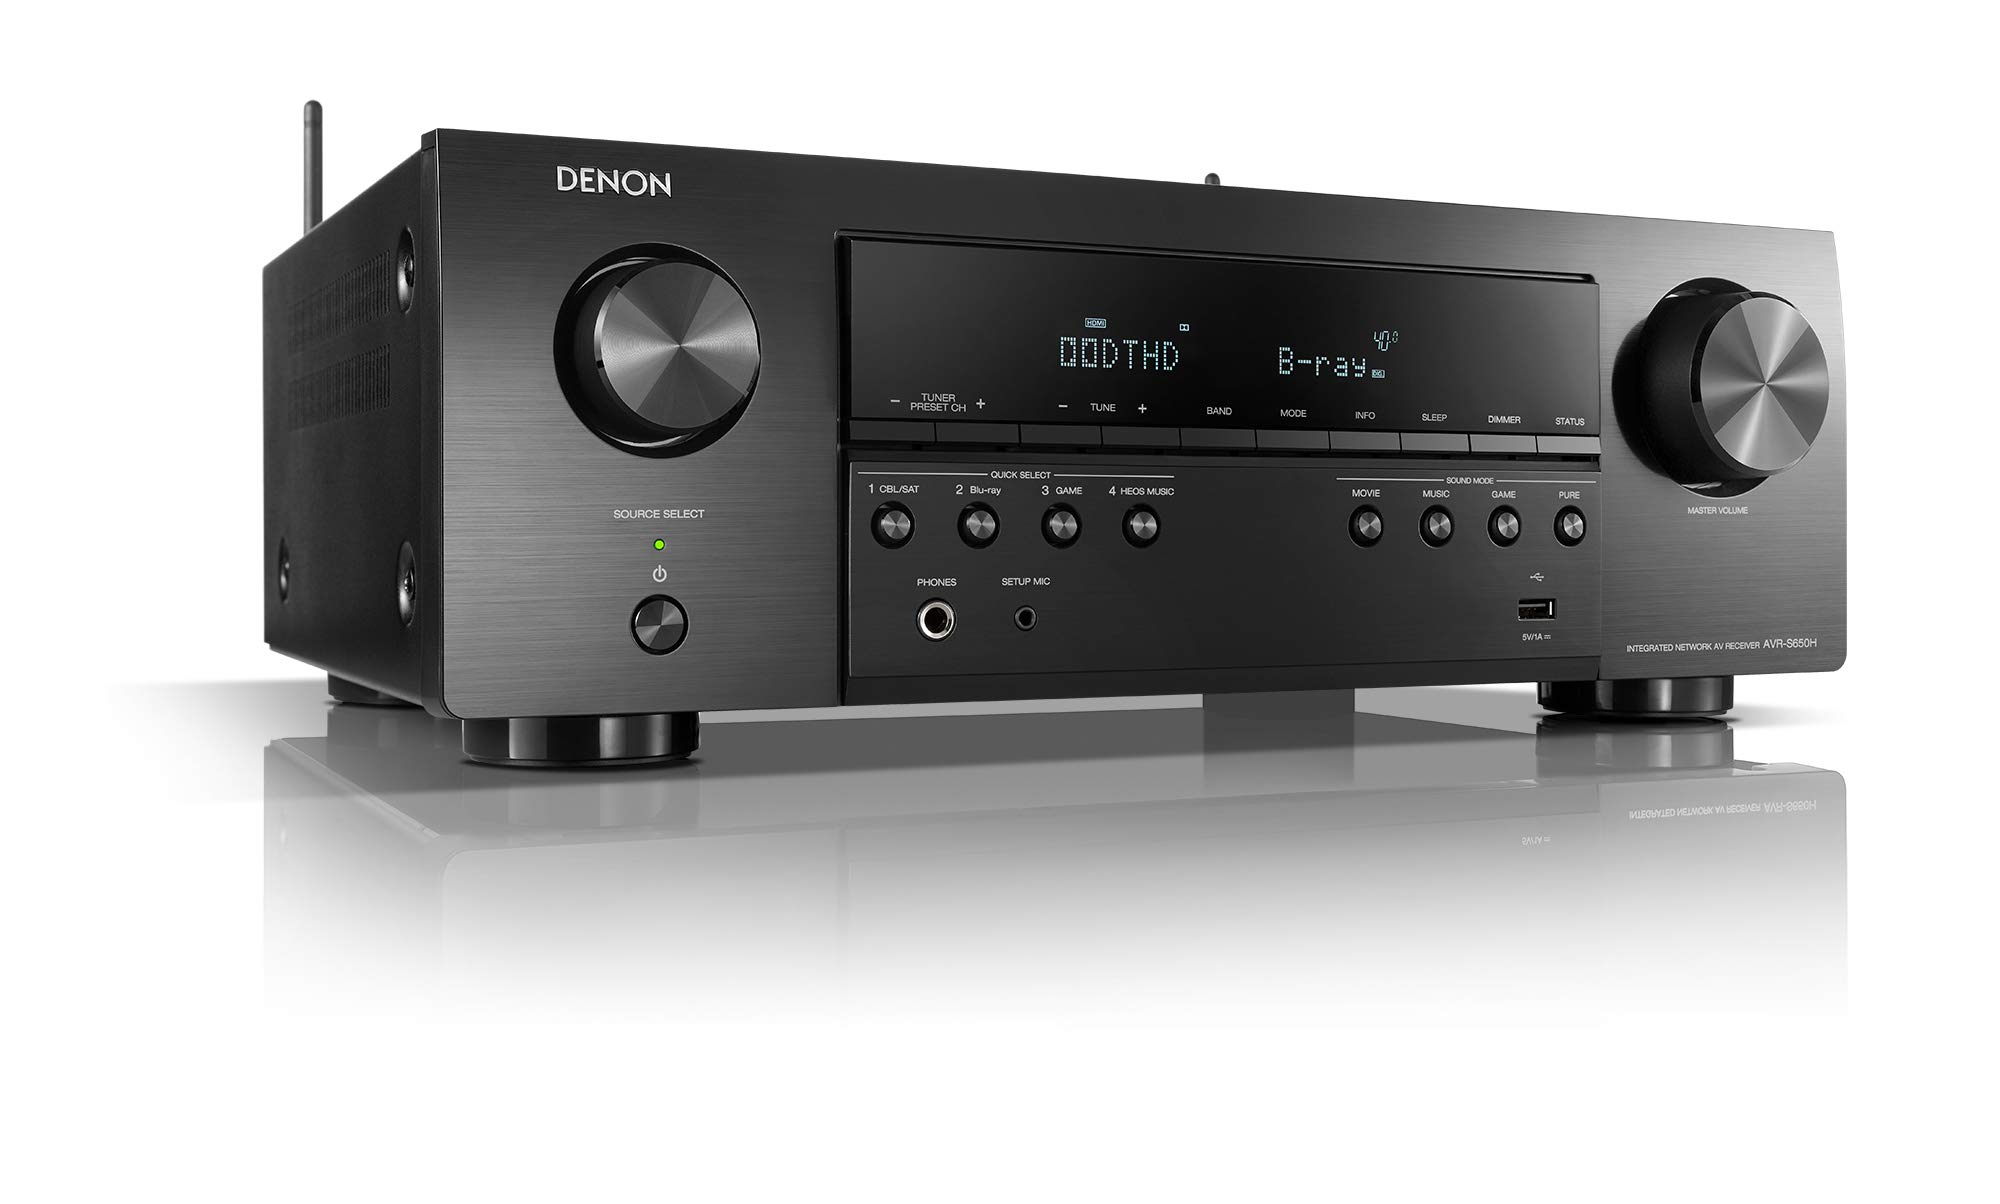 Denon AVR-S650H Audio Video Receiver, 5.2 Channel (150W X 5) 4K UHD Home Theater Surround Sound (2019)   Music Streaming   Wi-Fi, Bluetooth, AirPlay 2, Alexa, HEOS Built-in   eARC and Upgraded HDCP